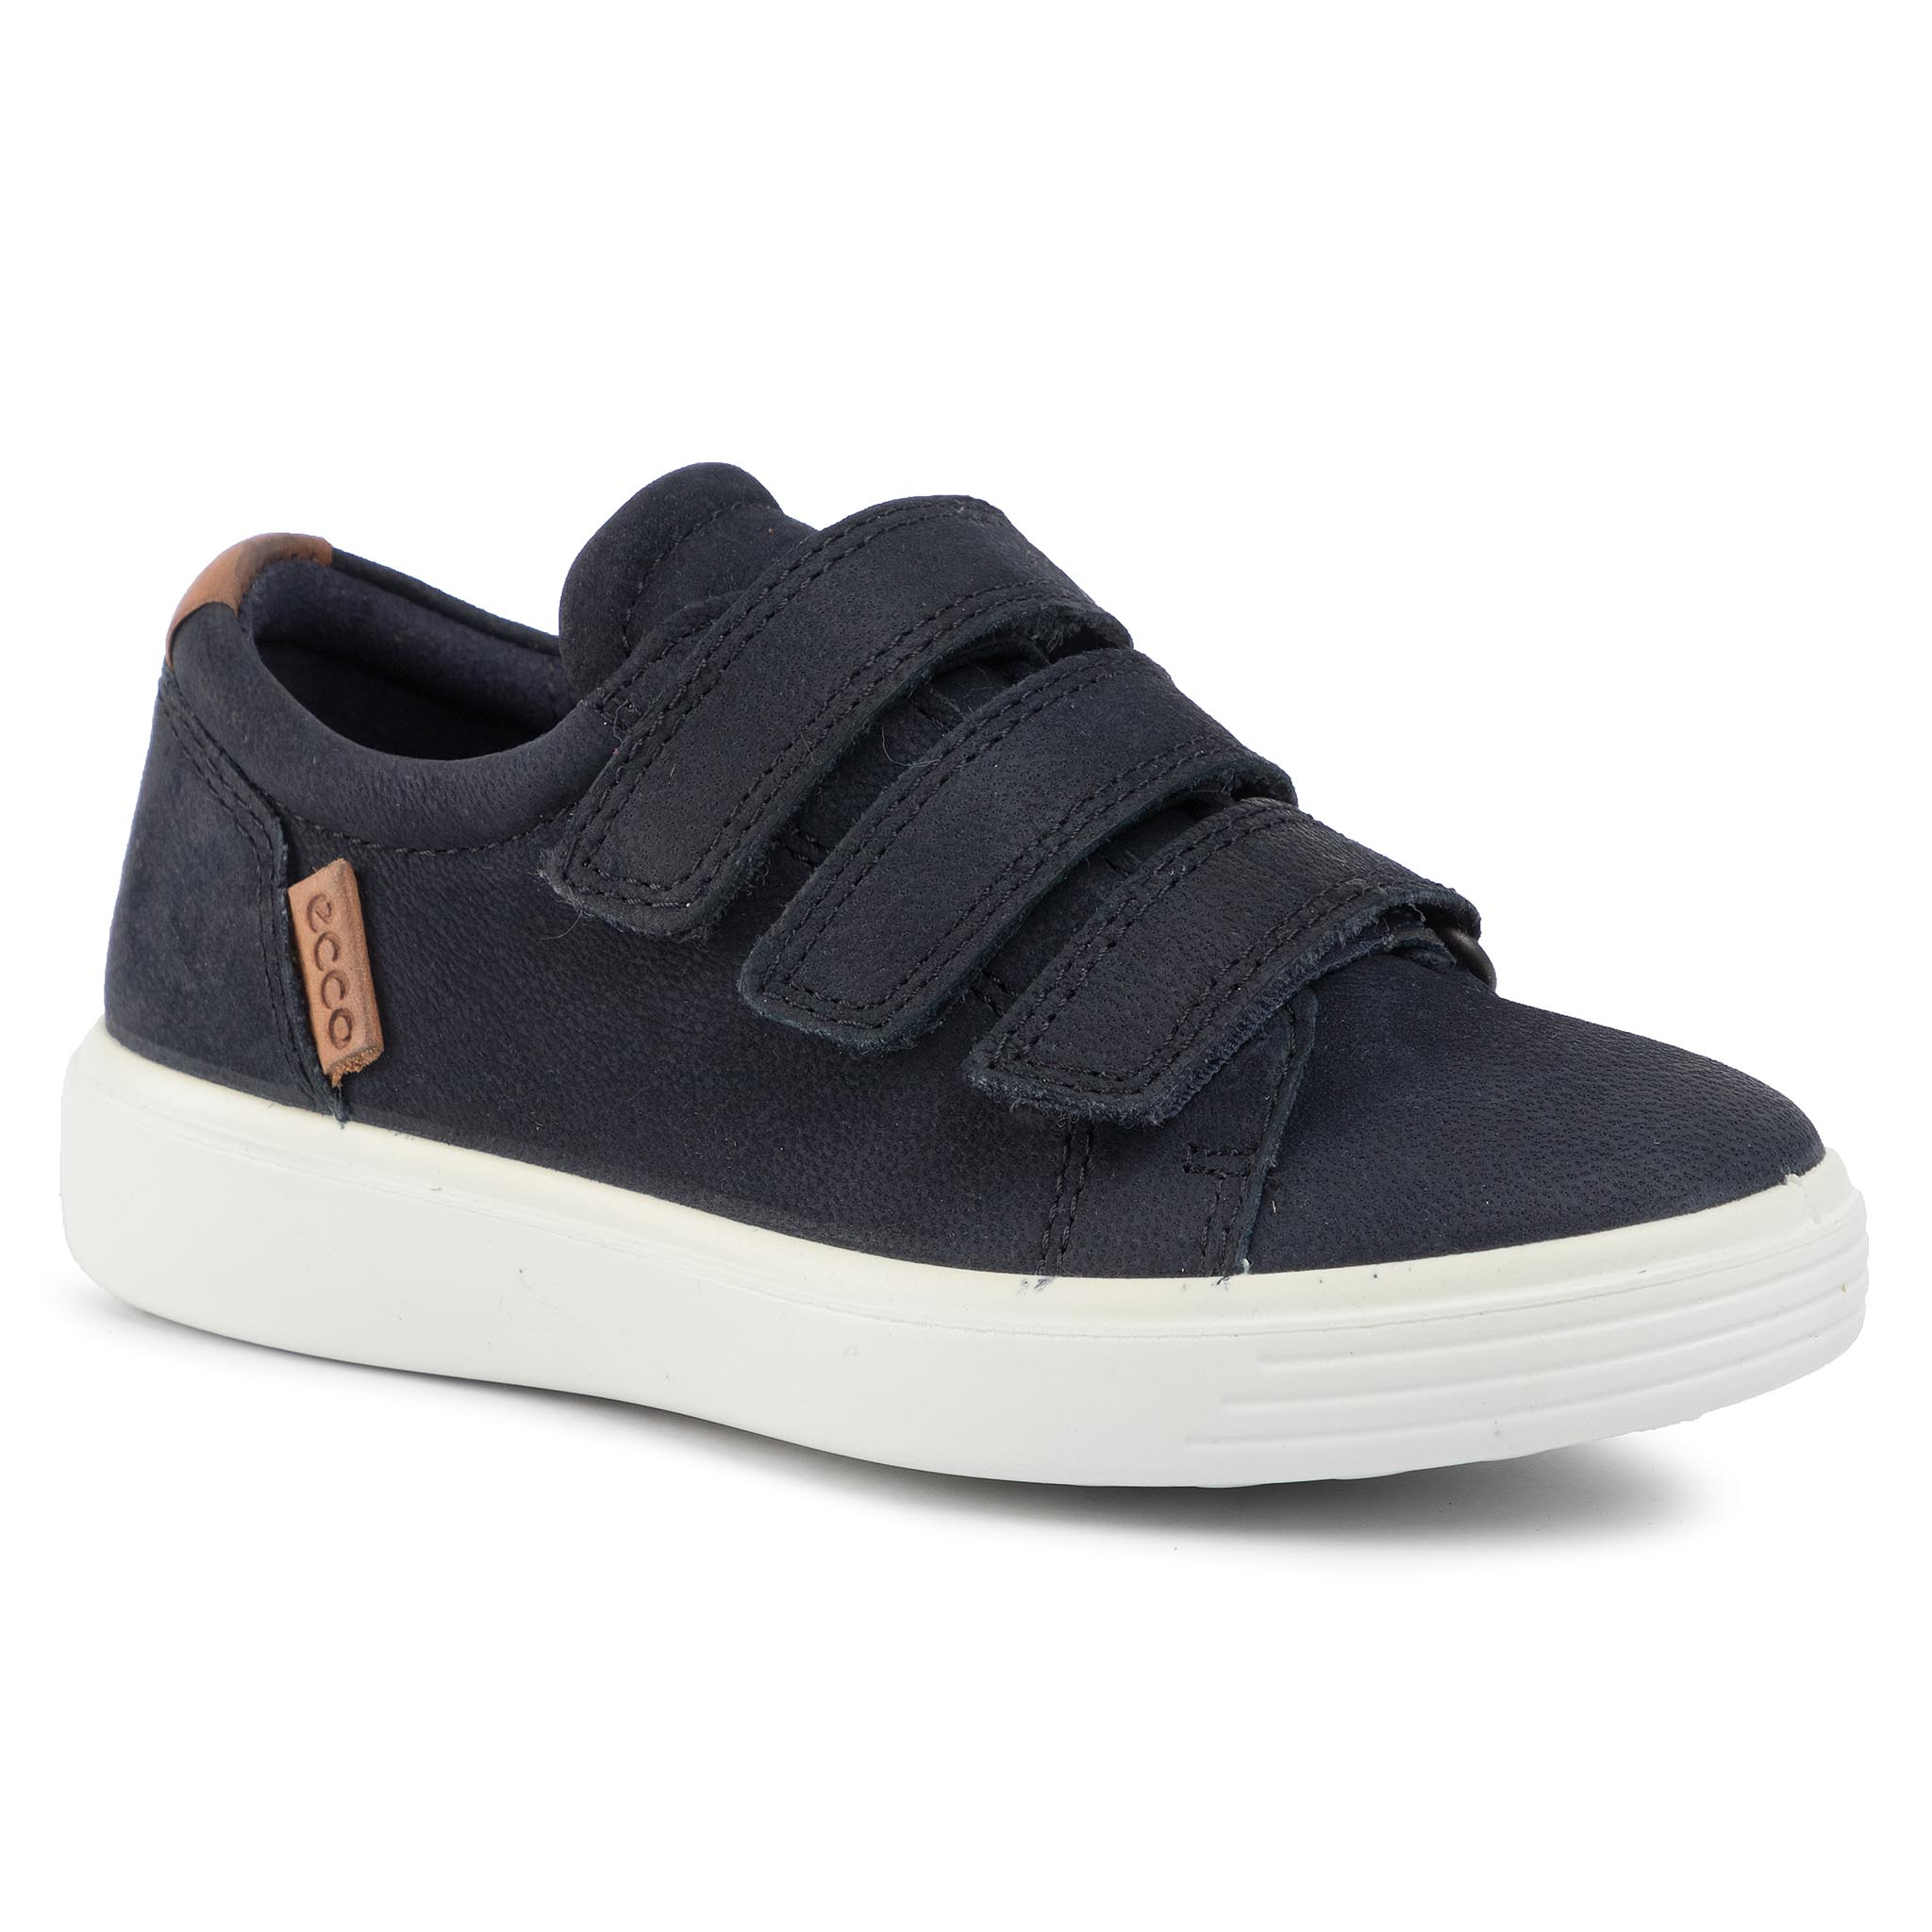 re3081 sneakers ecco first 75424102303 night sky